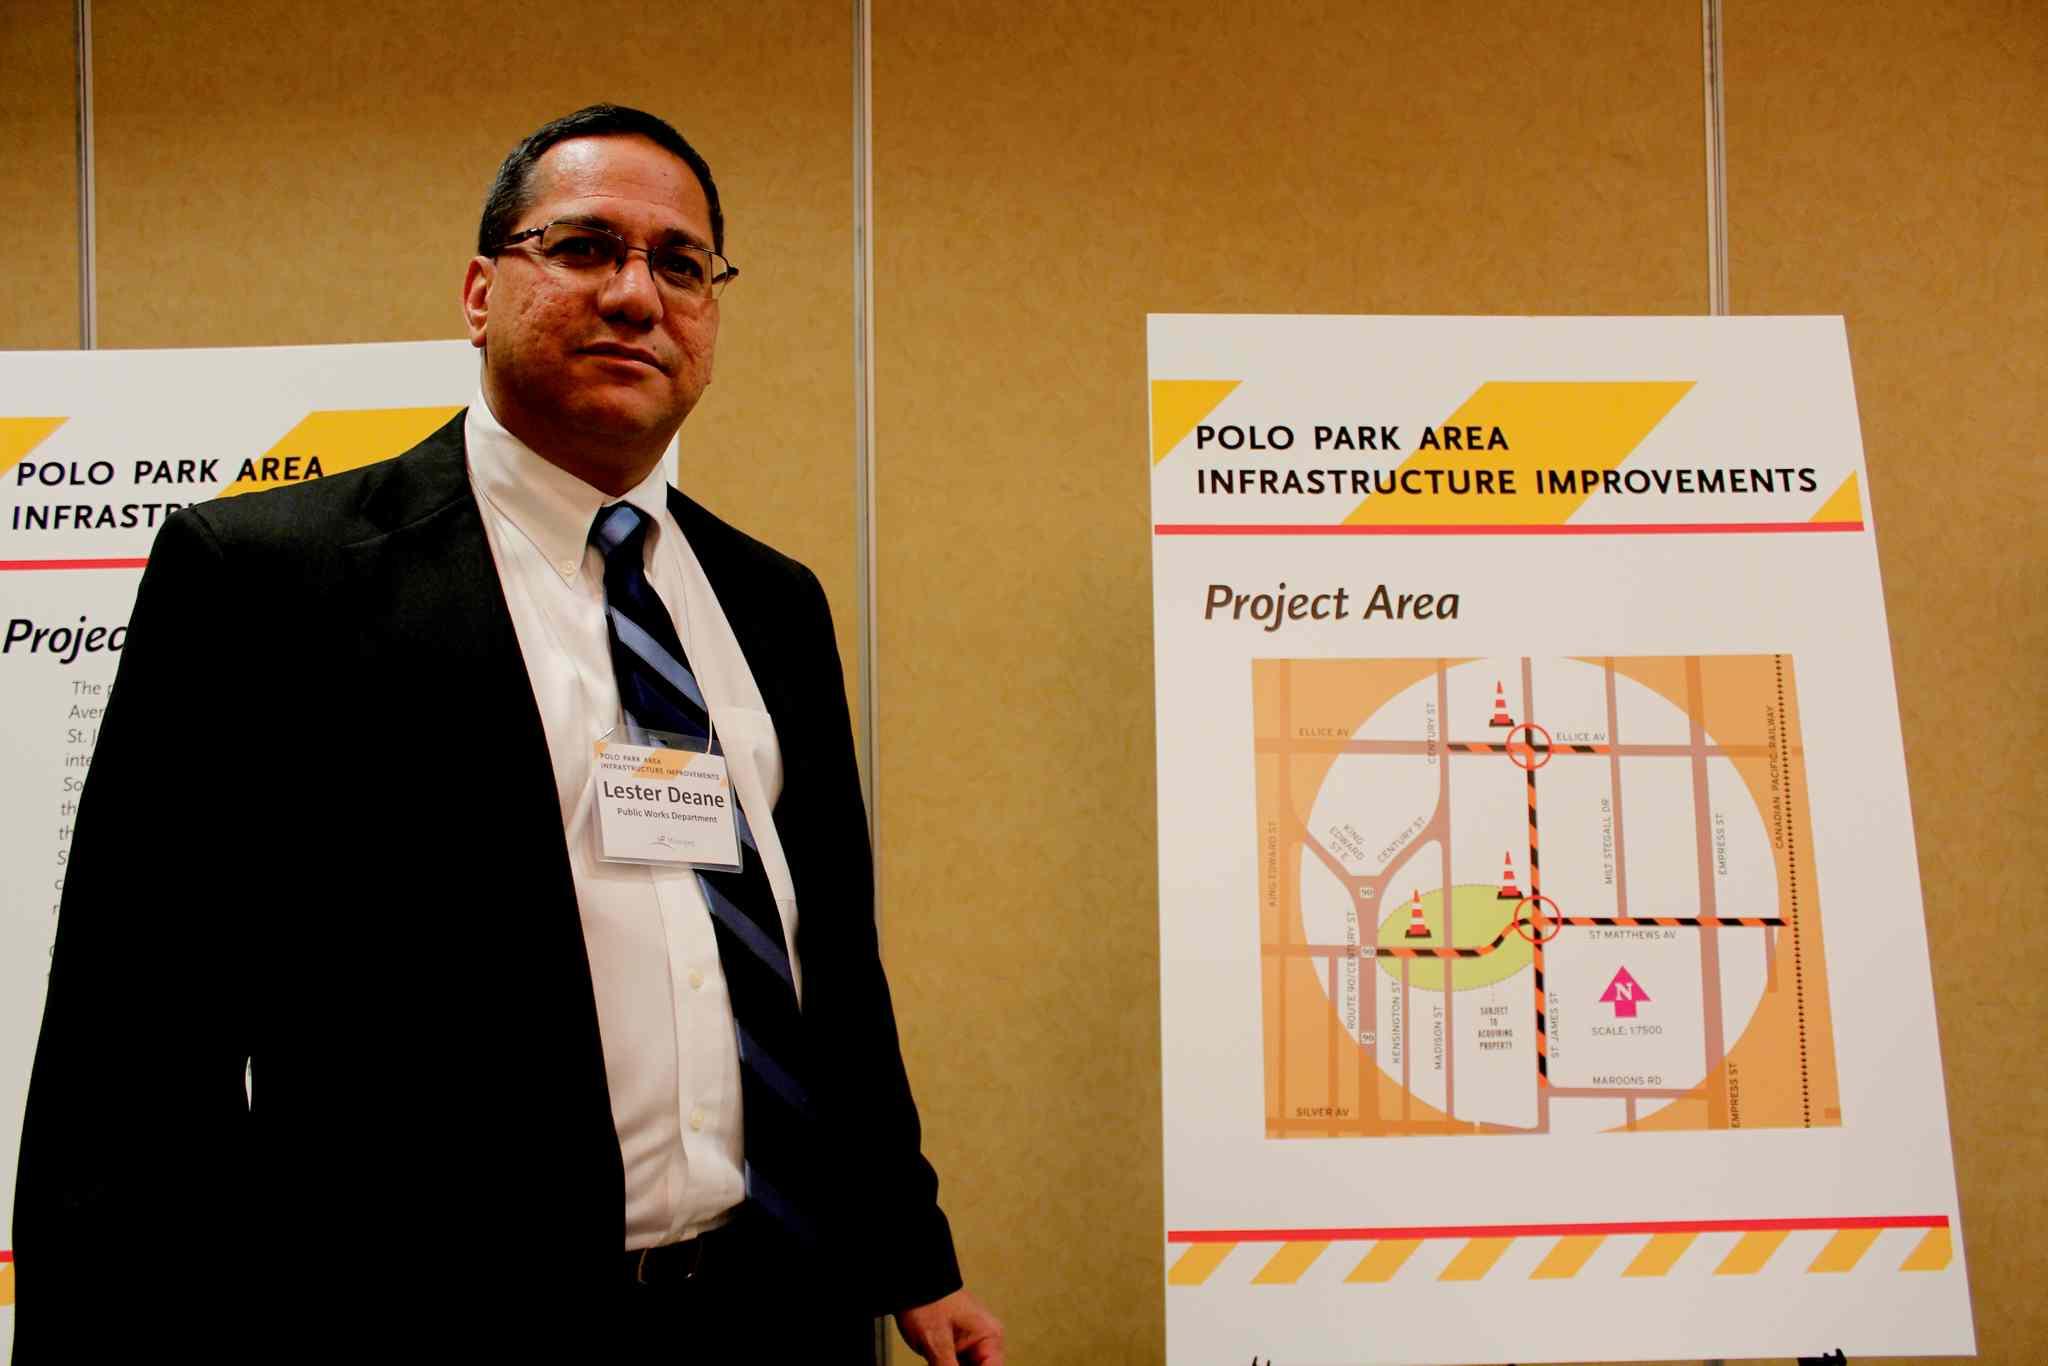 Lester Deane, manager of the engineering division of public works department, said the open house was to give people who work and live in the area a chance to see the upcoming project and provide their input.